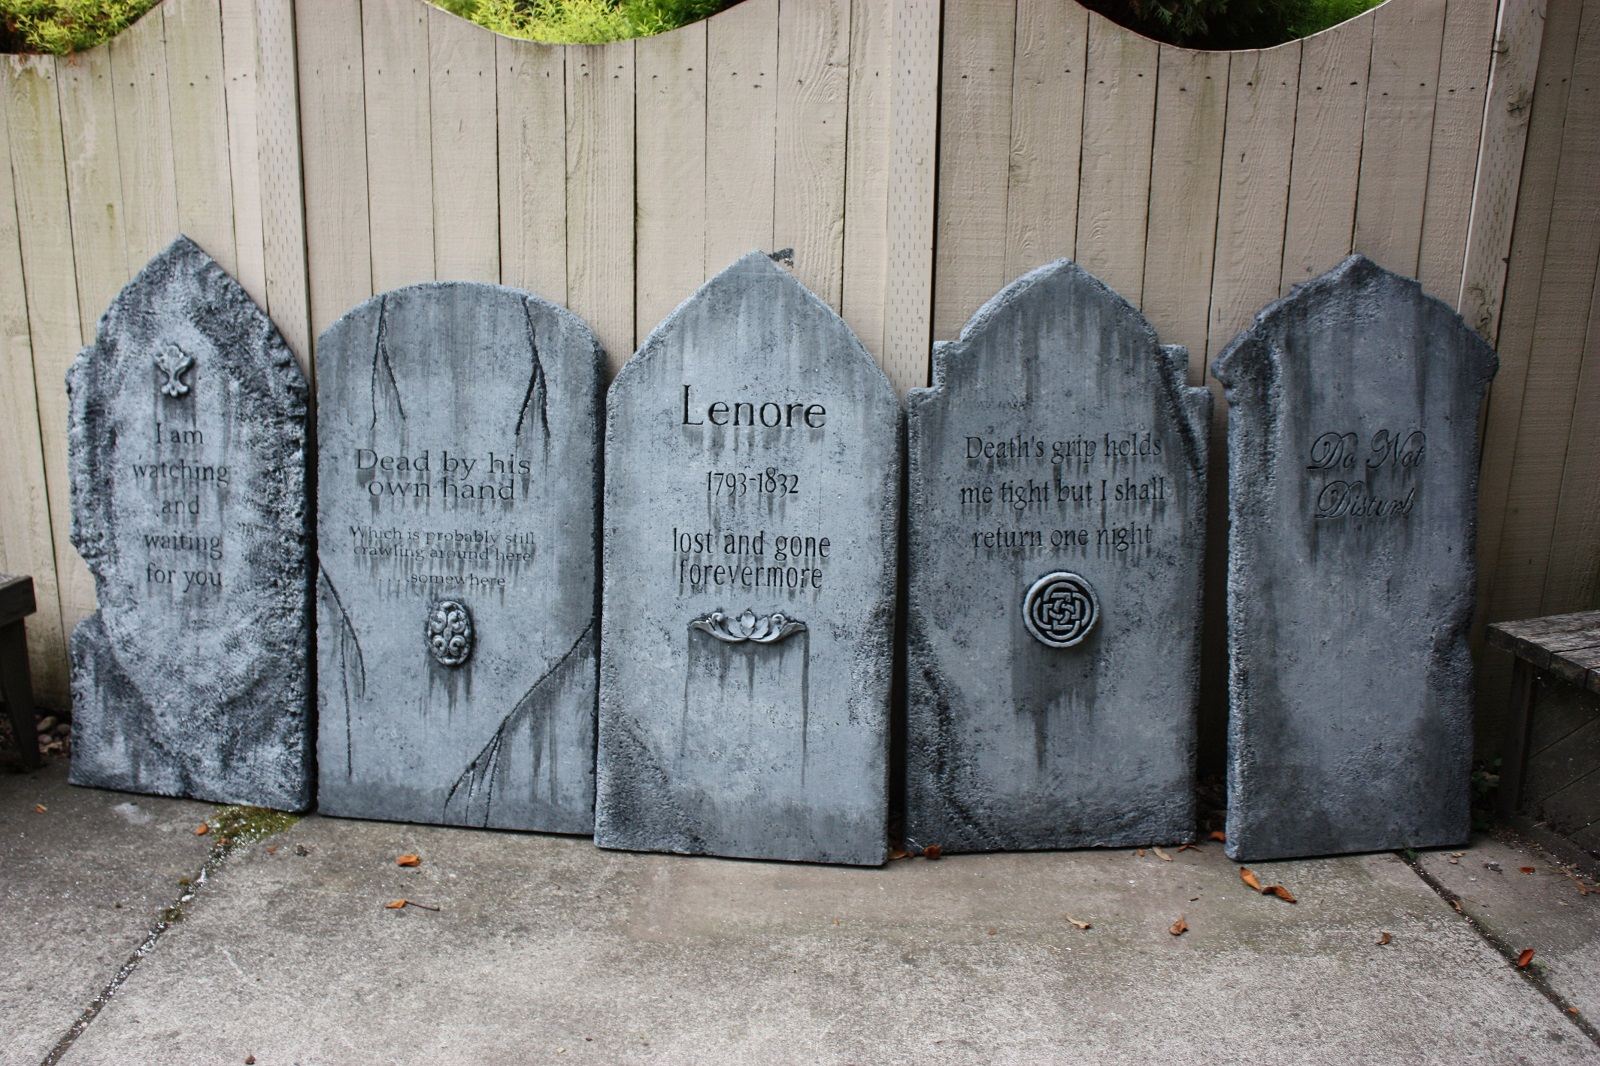 come learn to make your very own davis graveyard style tombstone you provide us with your epitaph and we will help you make your own tombstone - Davis Halloween Store